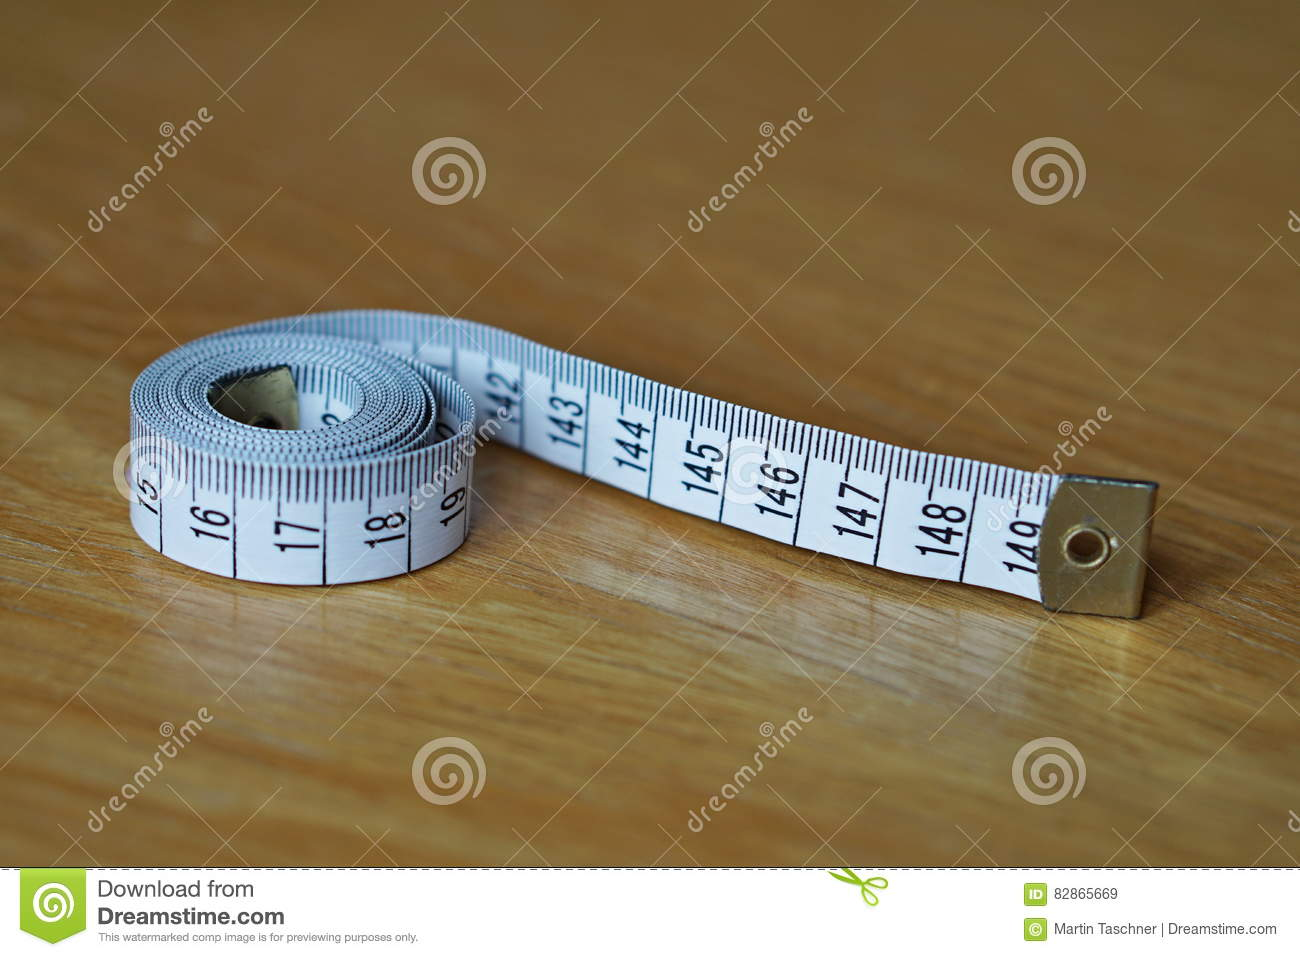 Tape Measure Measuring Length In Centimeters And Meters